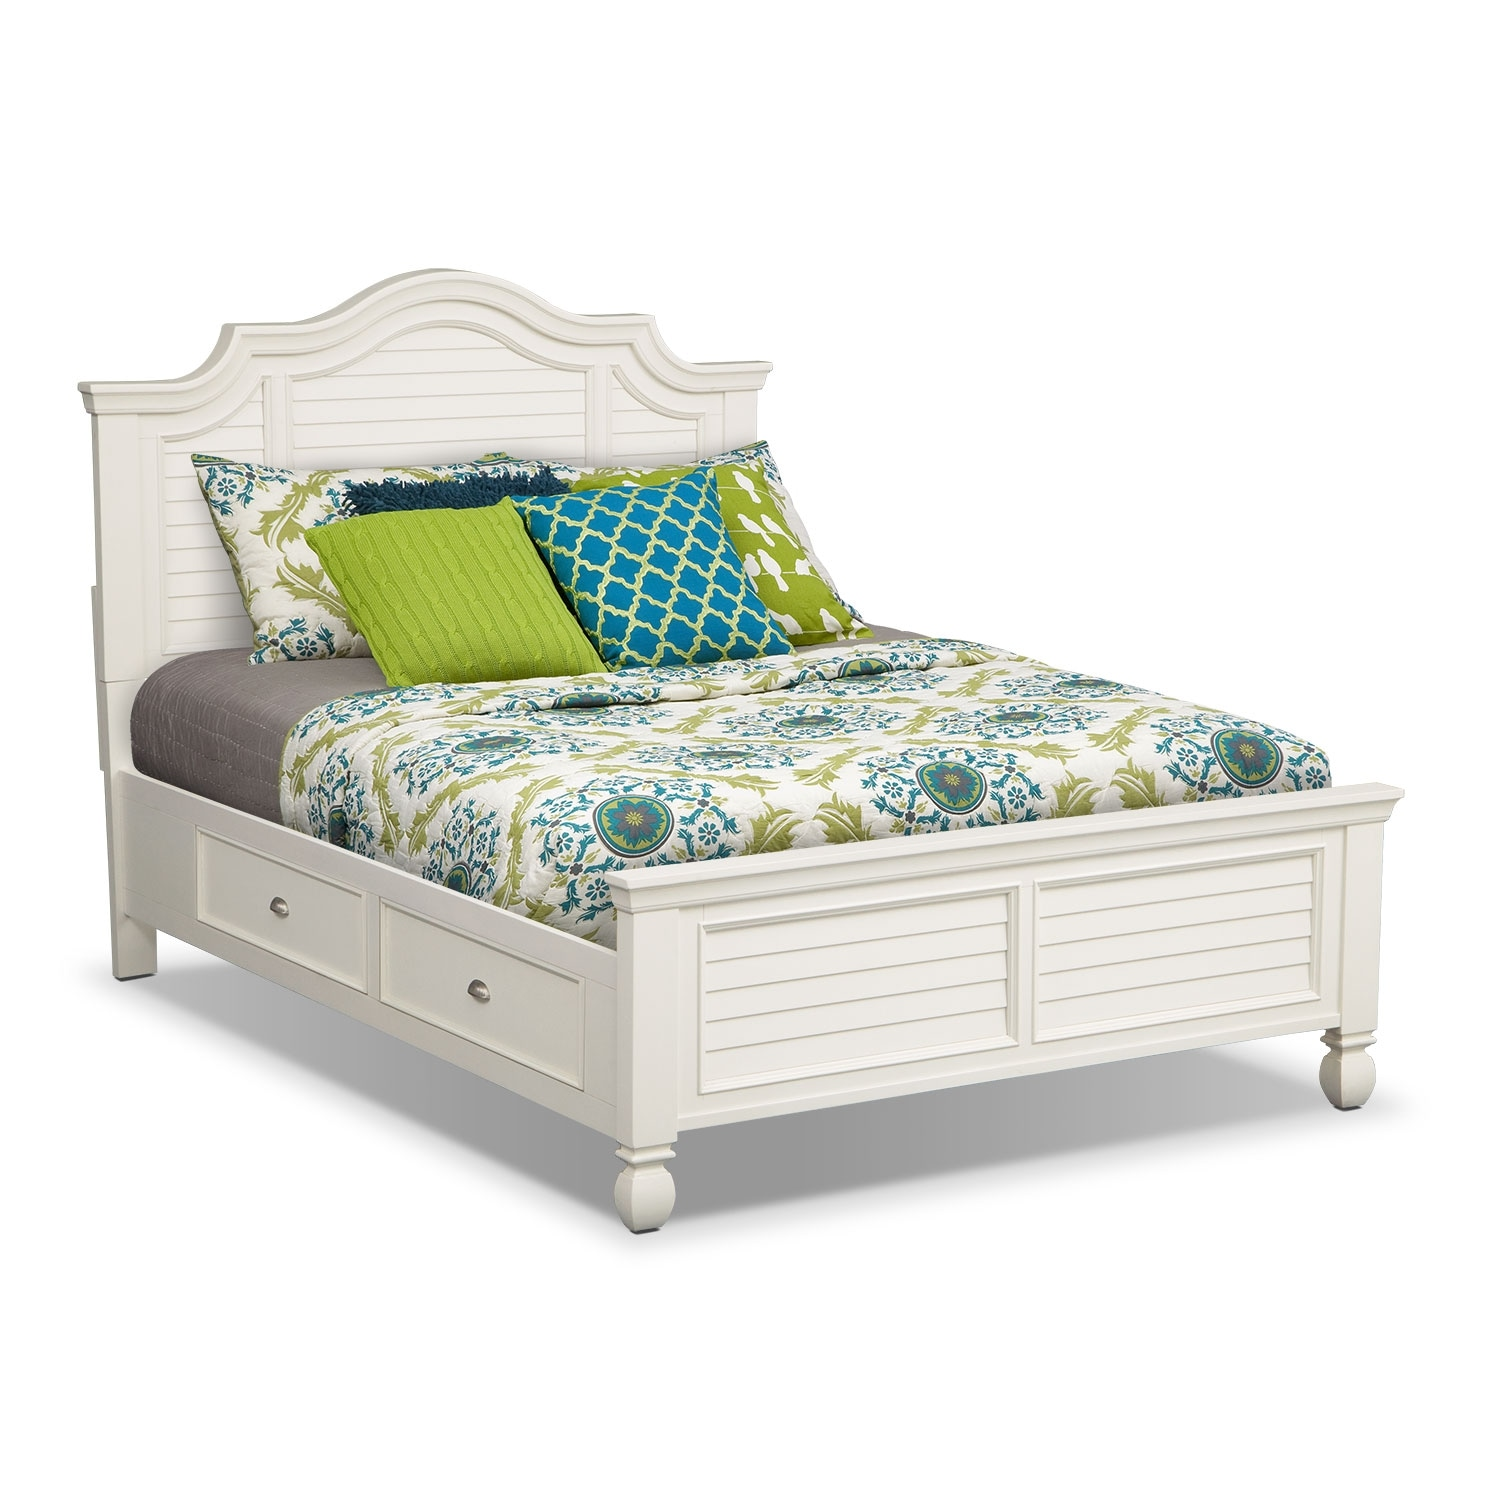 Plantation Cove Queen Storage Bed - White